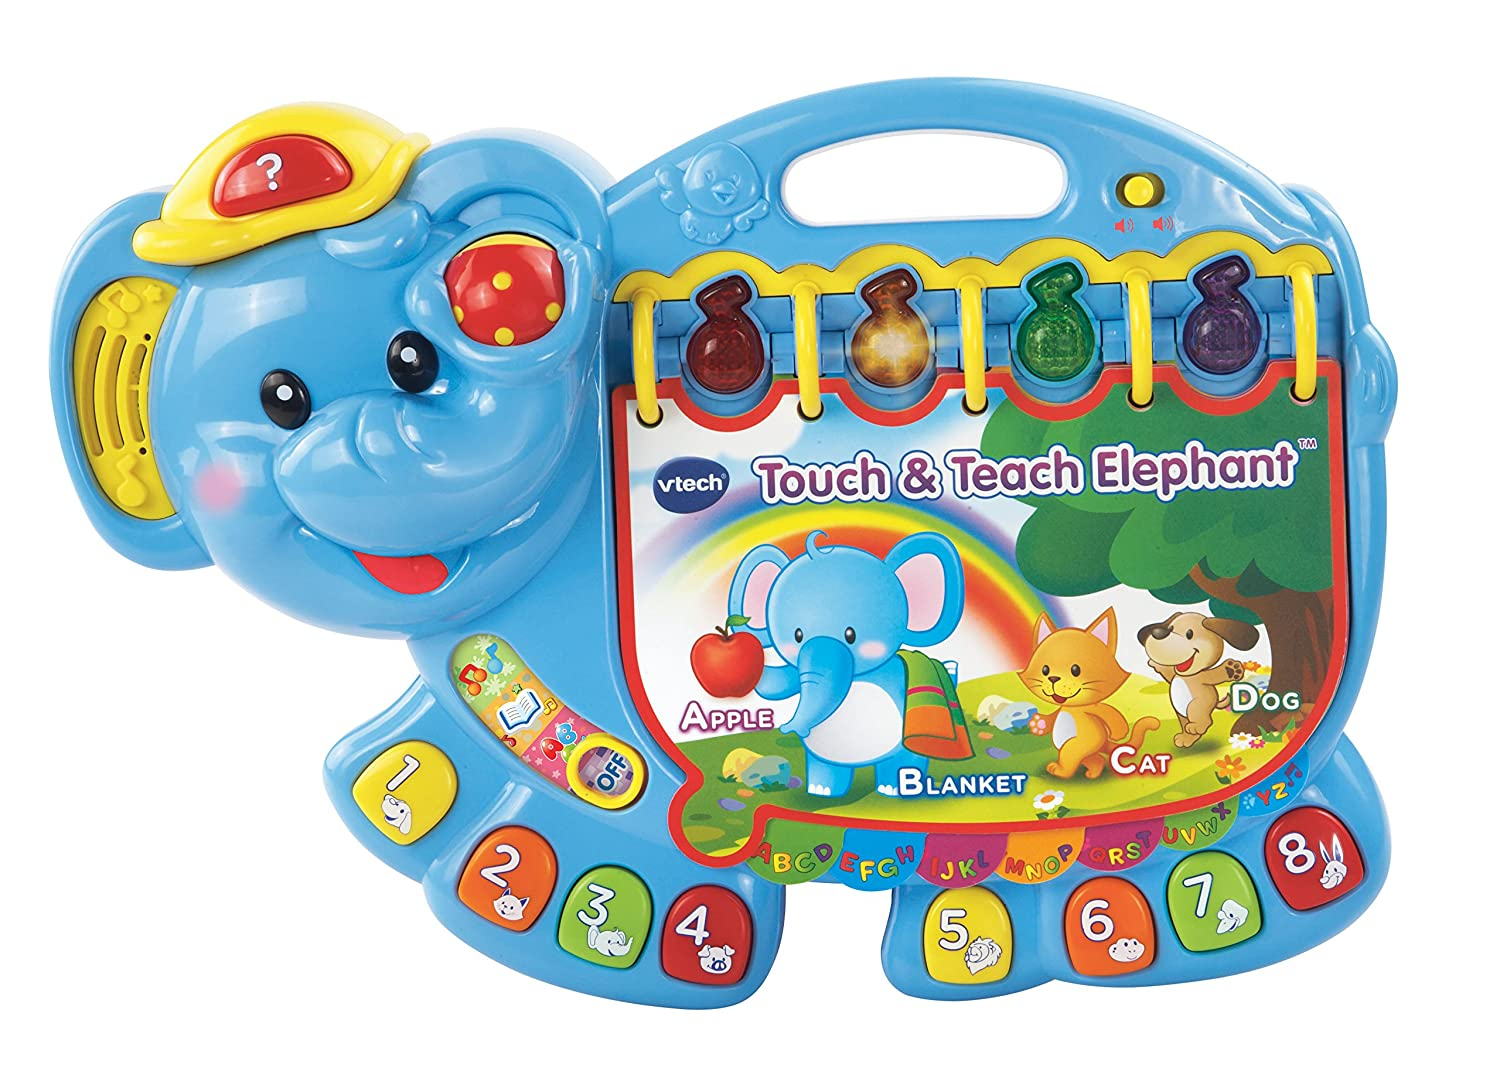 Top Vtech Toys : Top learning toys for toddlers developmental and